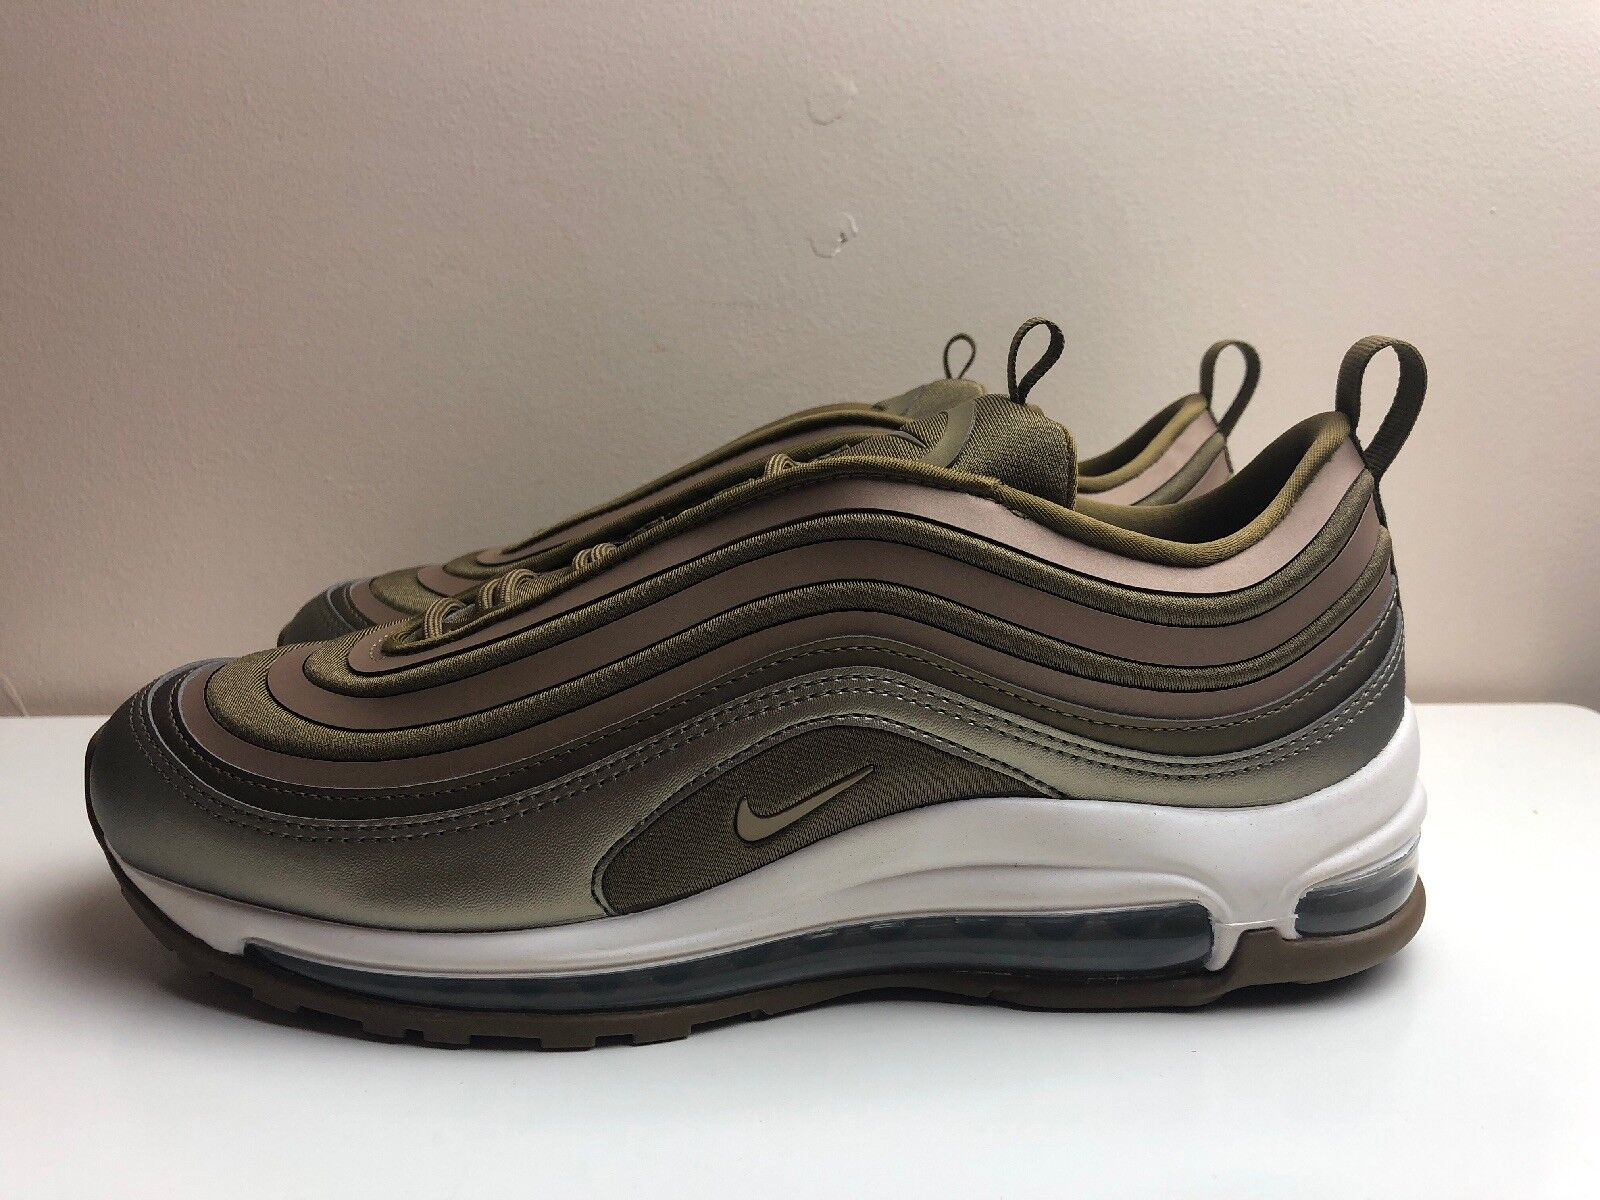 Nike W Air Max Max Max 97 Ultra 17 Trainers Gold UK 6.5 EUR 40.5 917704 901 d3172e